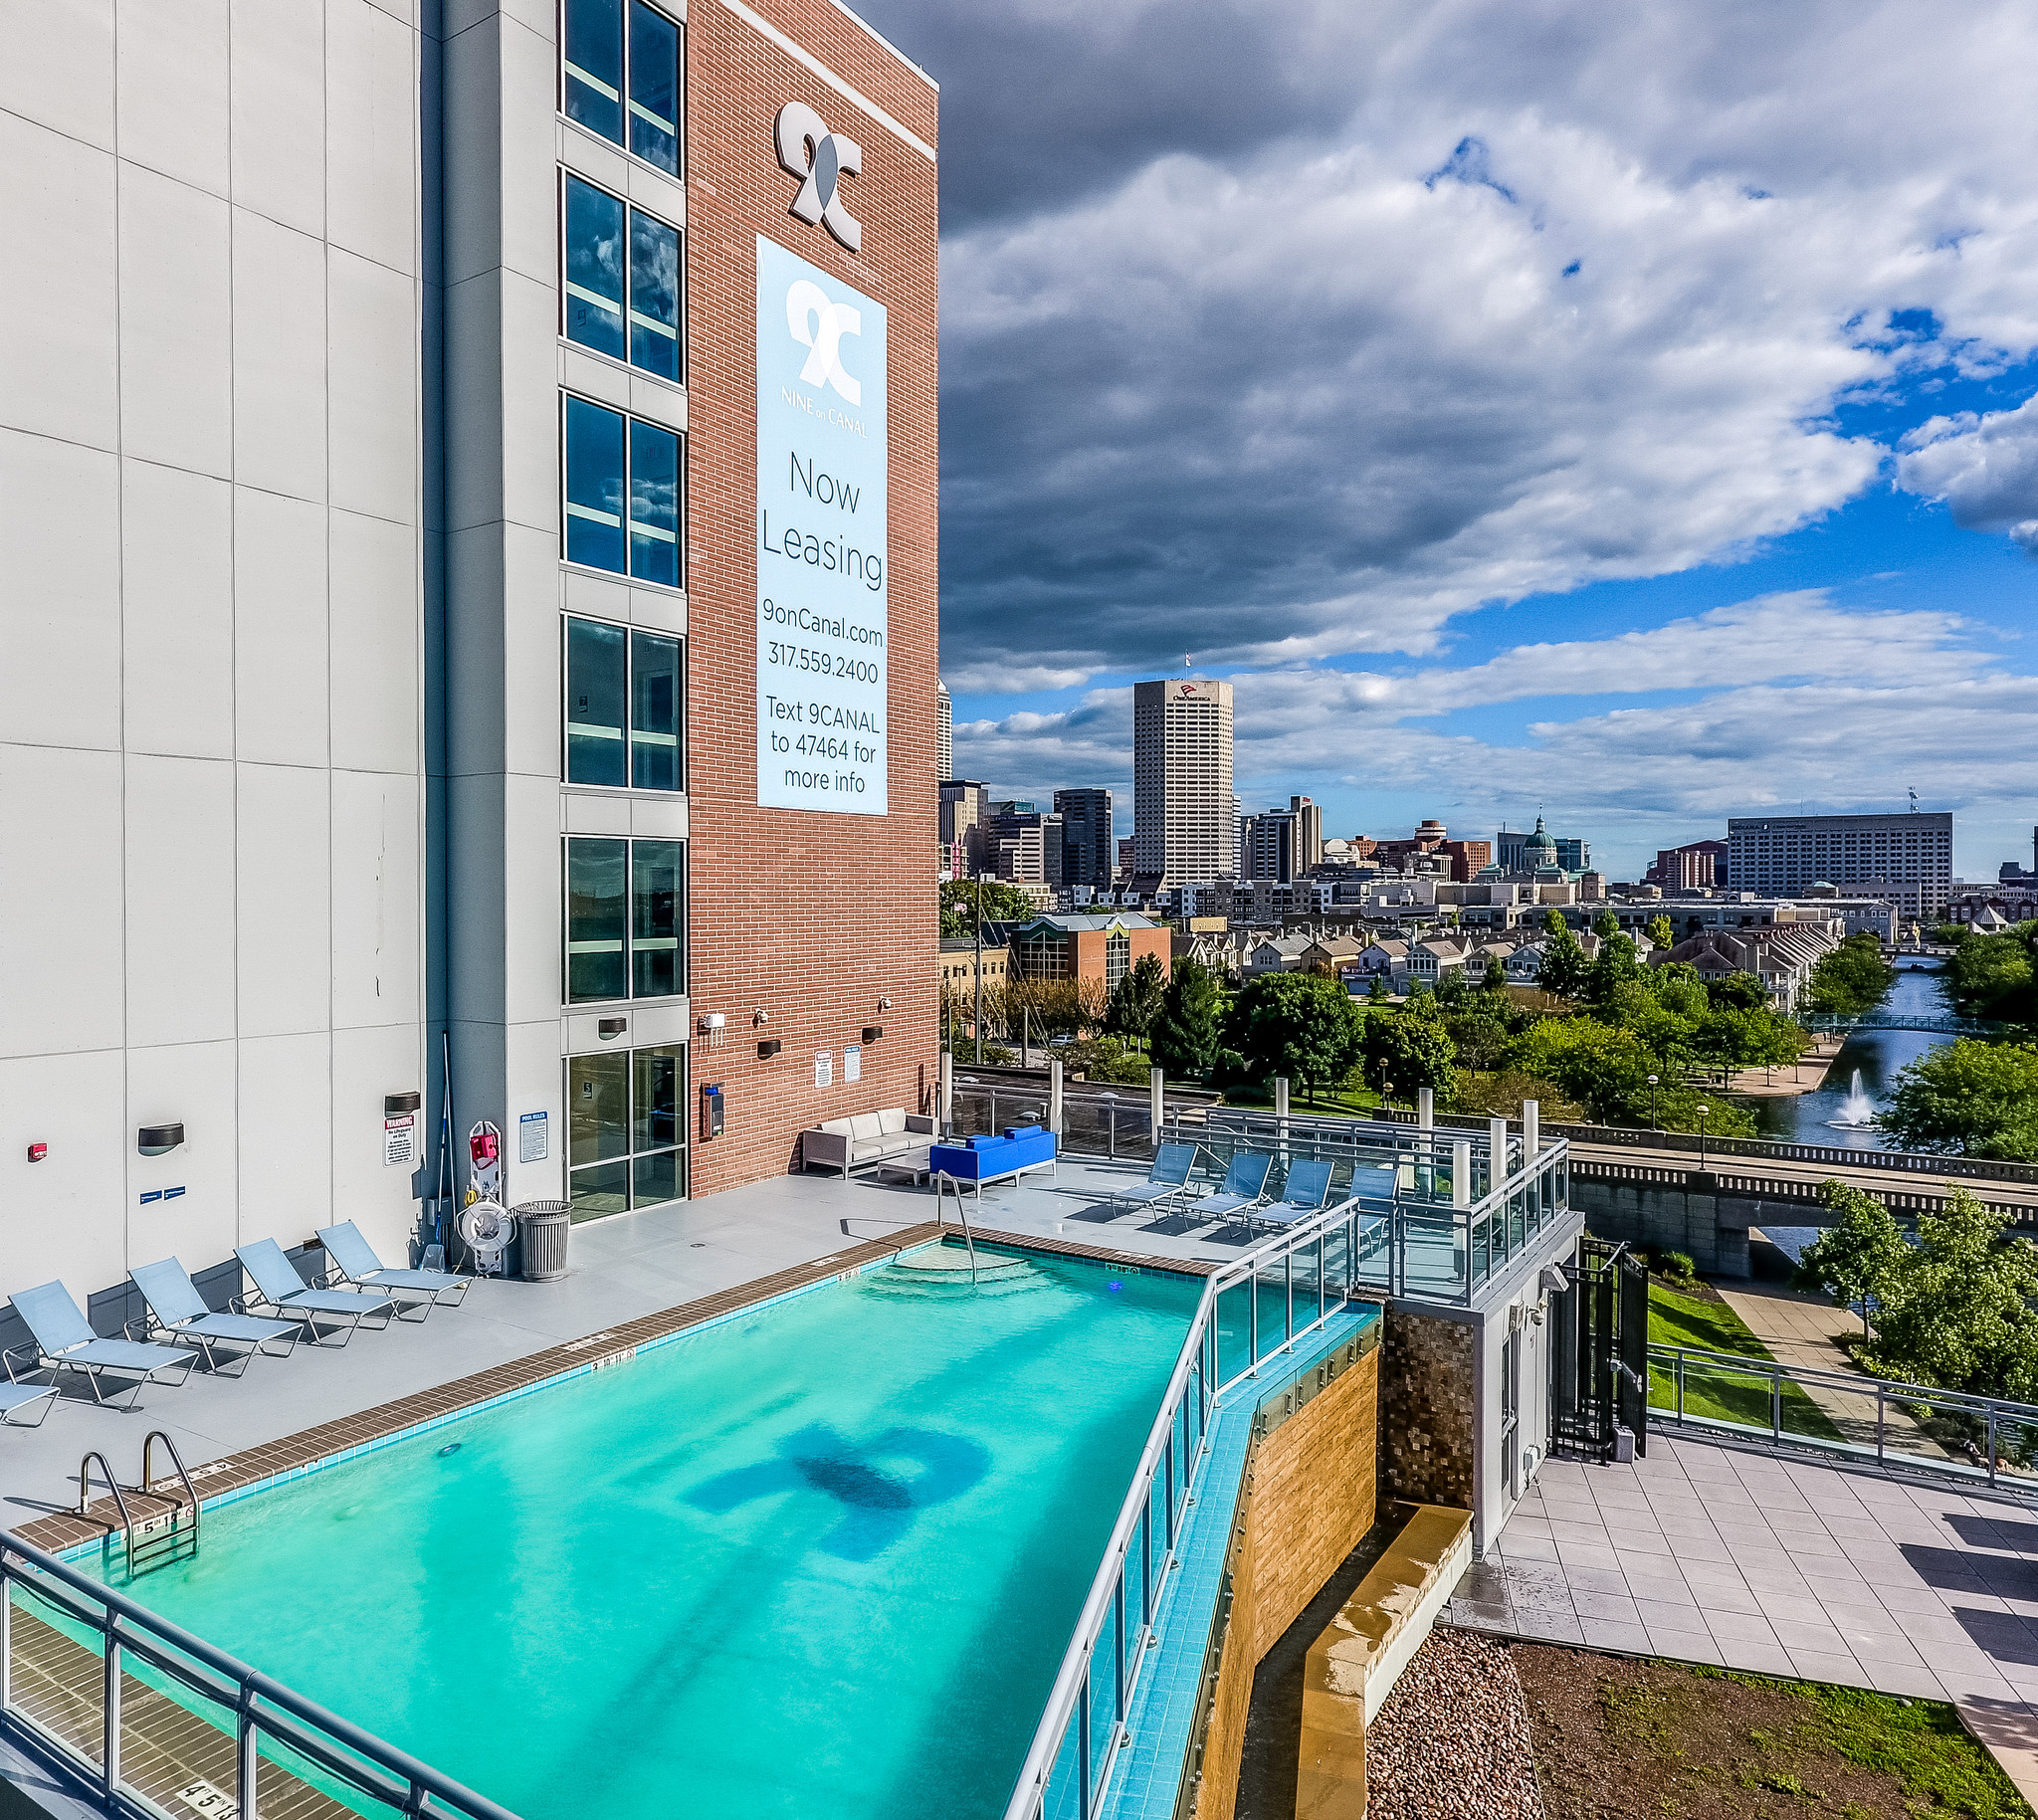 9-on-canal-indianapolis-in-salt-water-infinity-pool.jpg